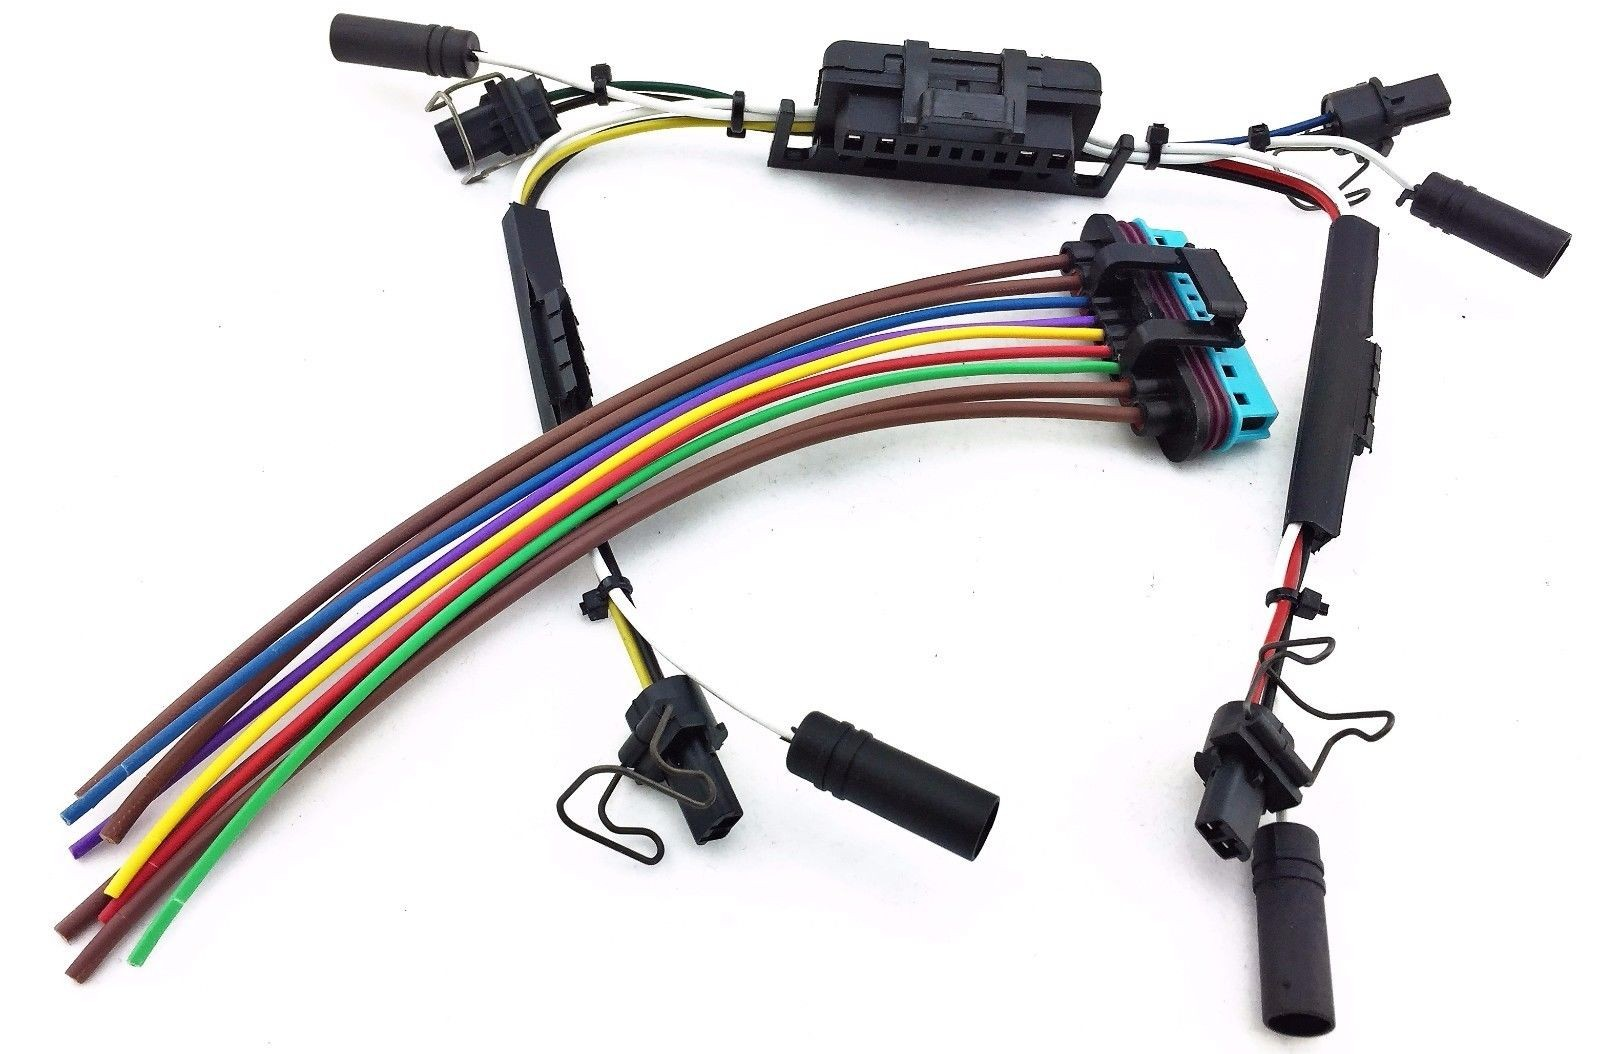 04 F250 Injector Wiring Harness 2004 Ford F 250